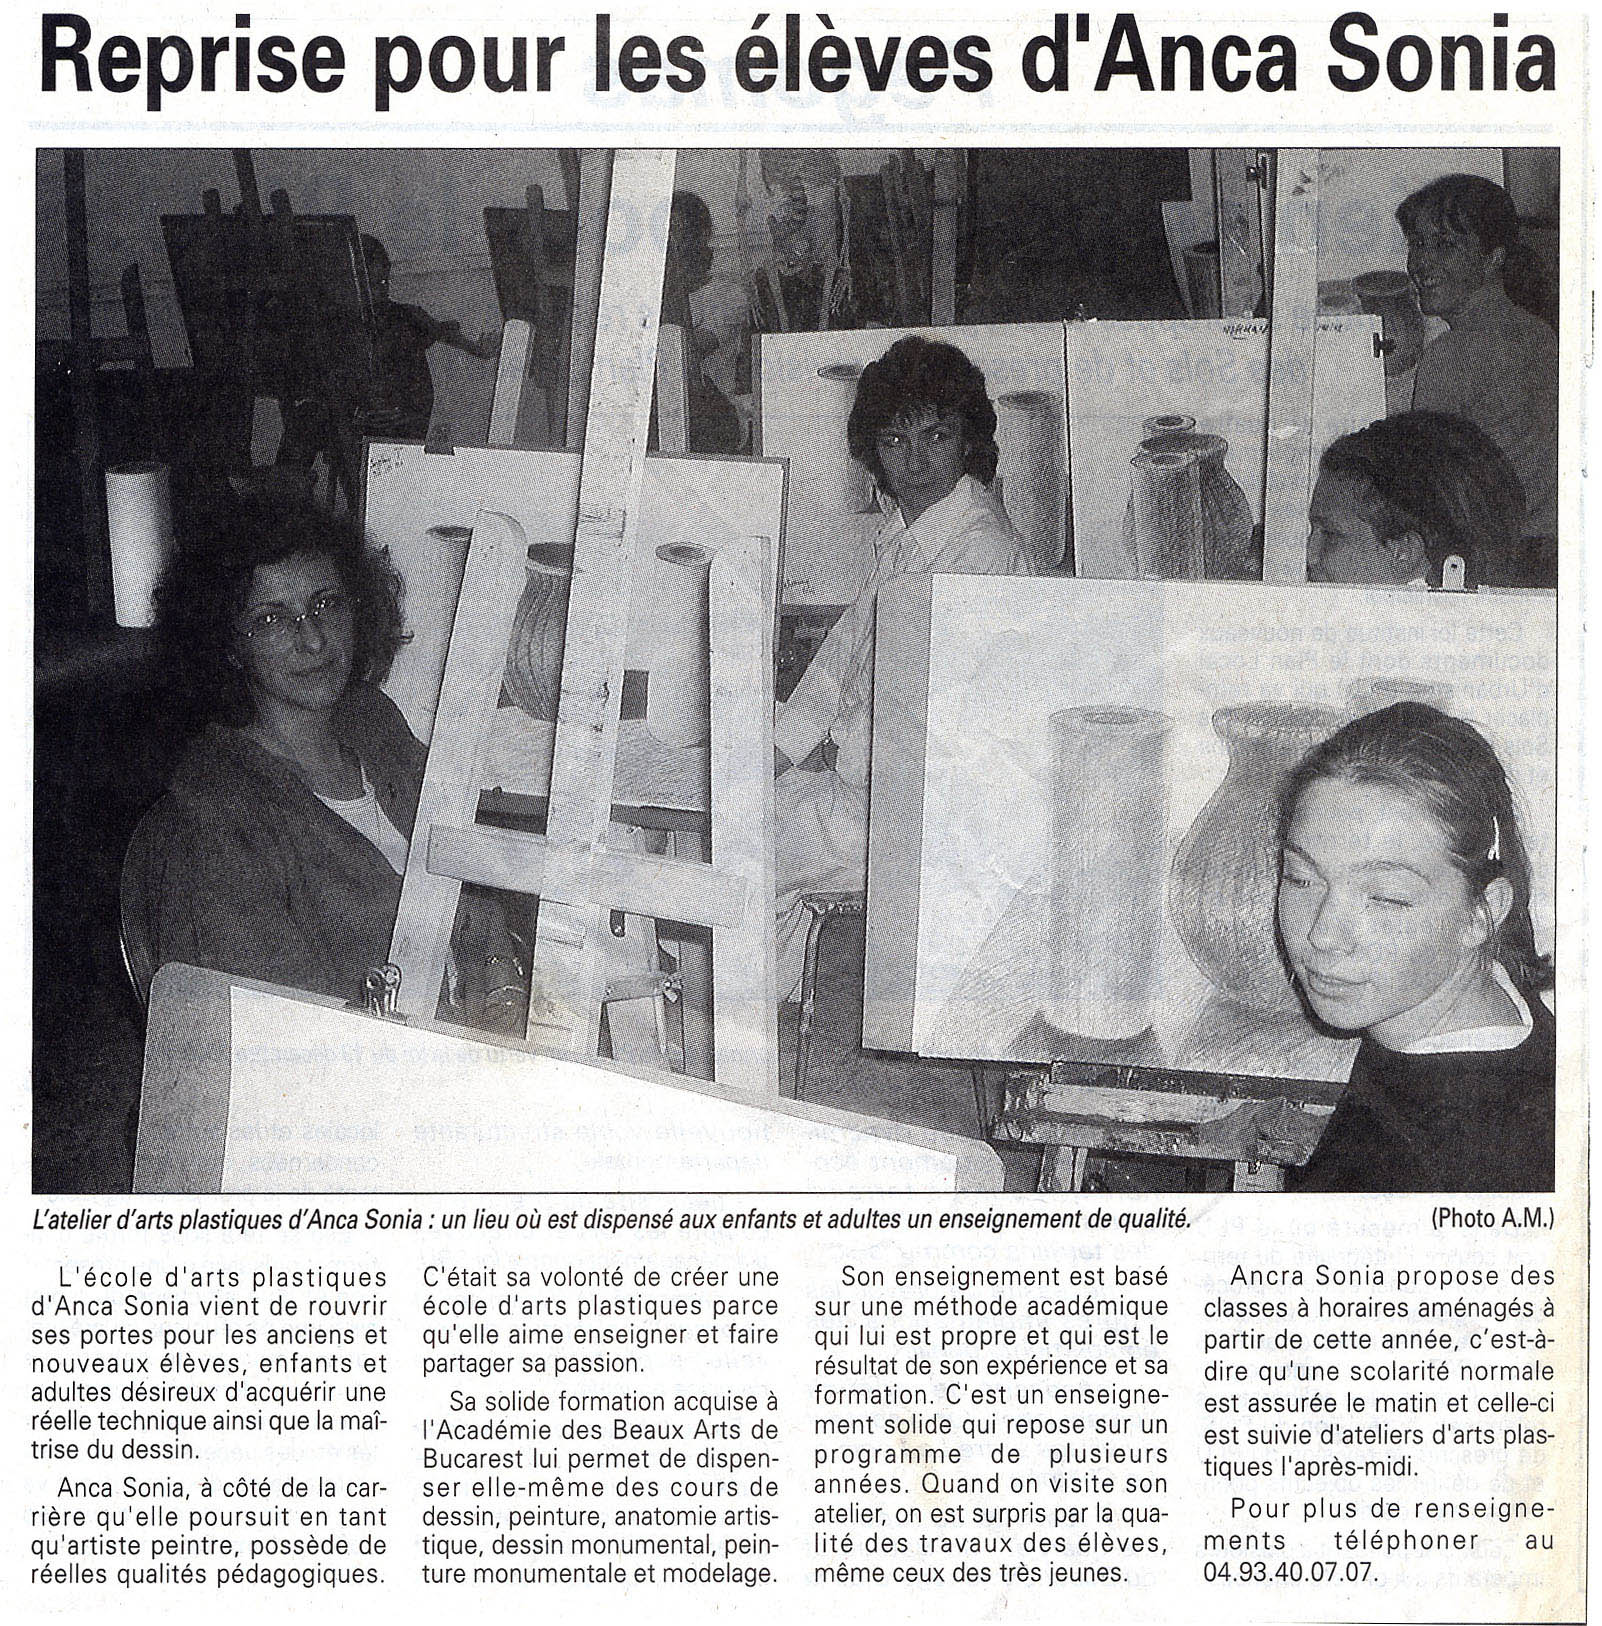 2001-10-18-Nice-matin-reprise-pour-les-eleves